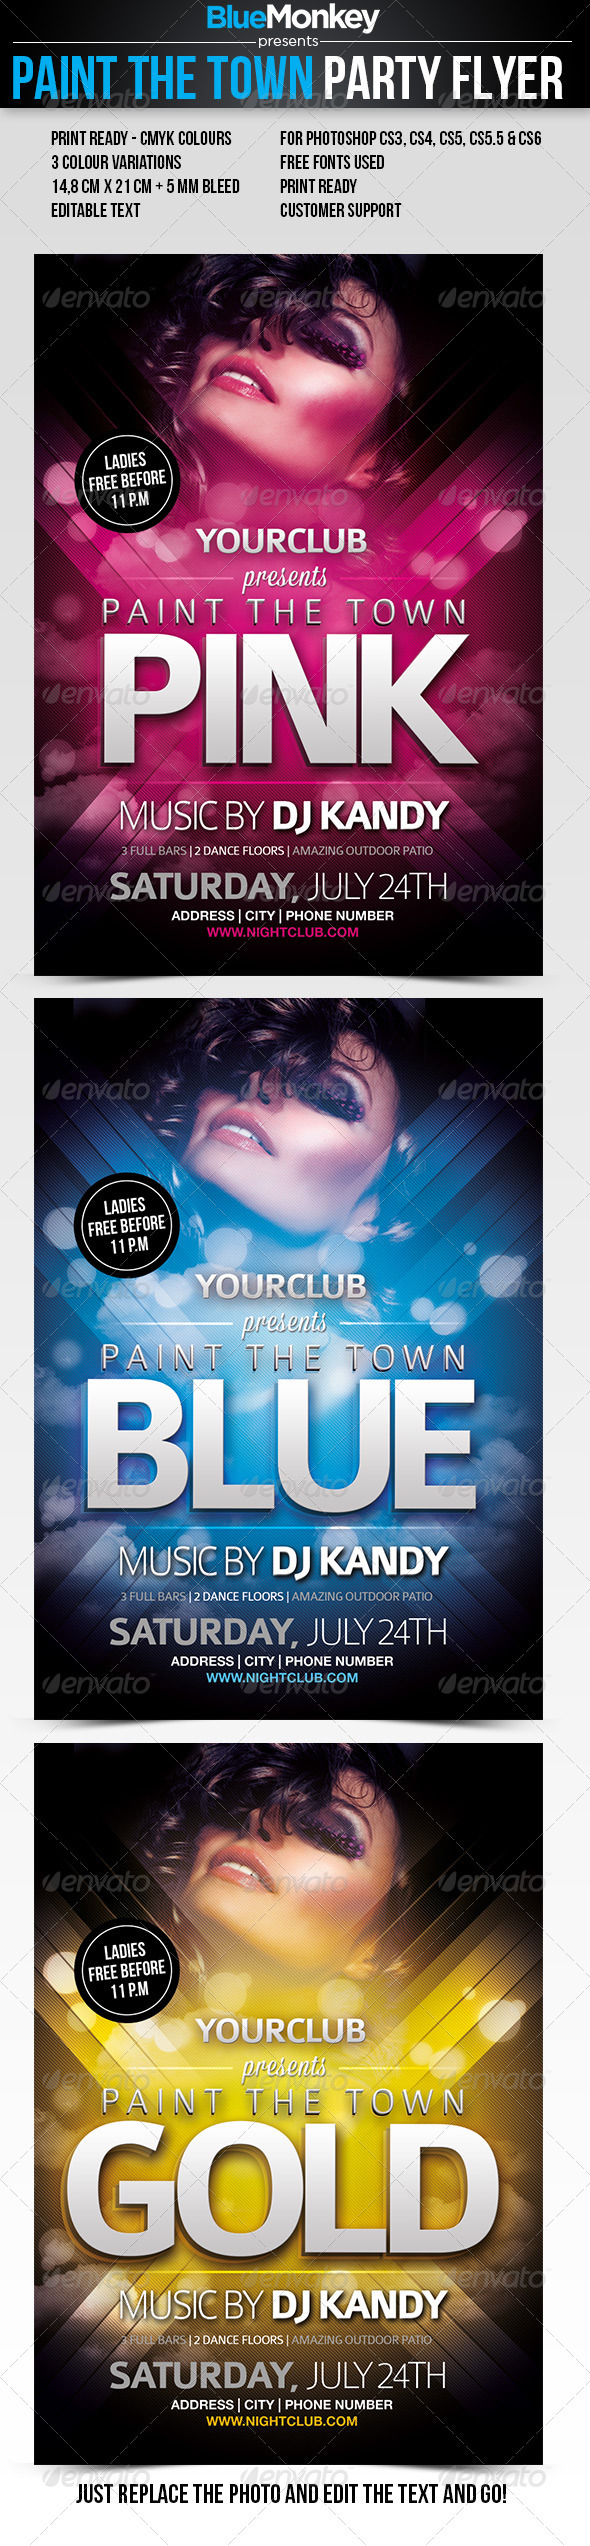 GraphicRiver Paint The Town Party Flyer 2684966